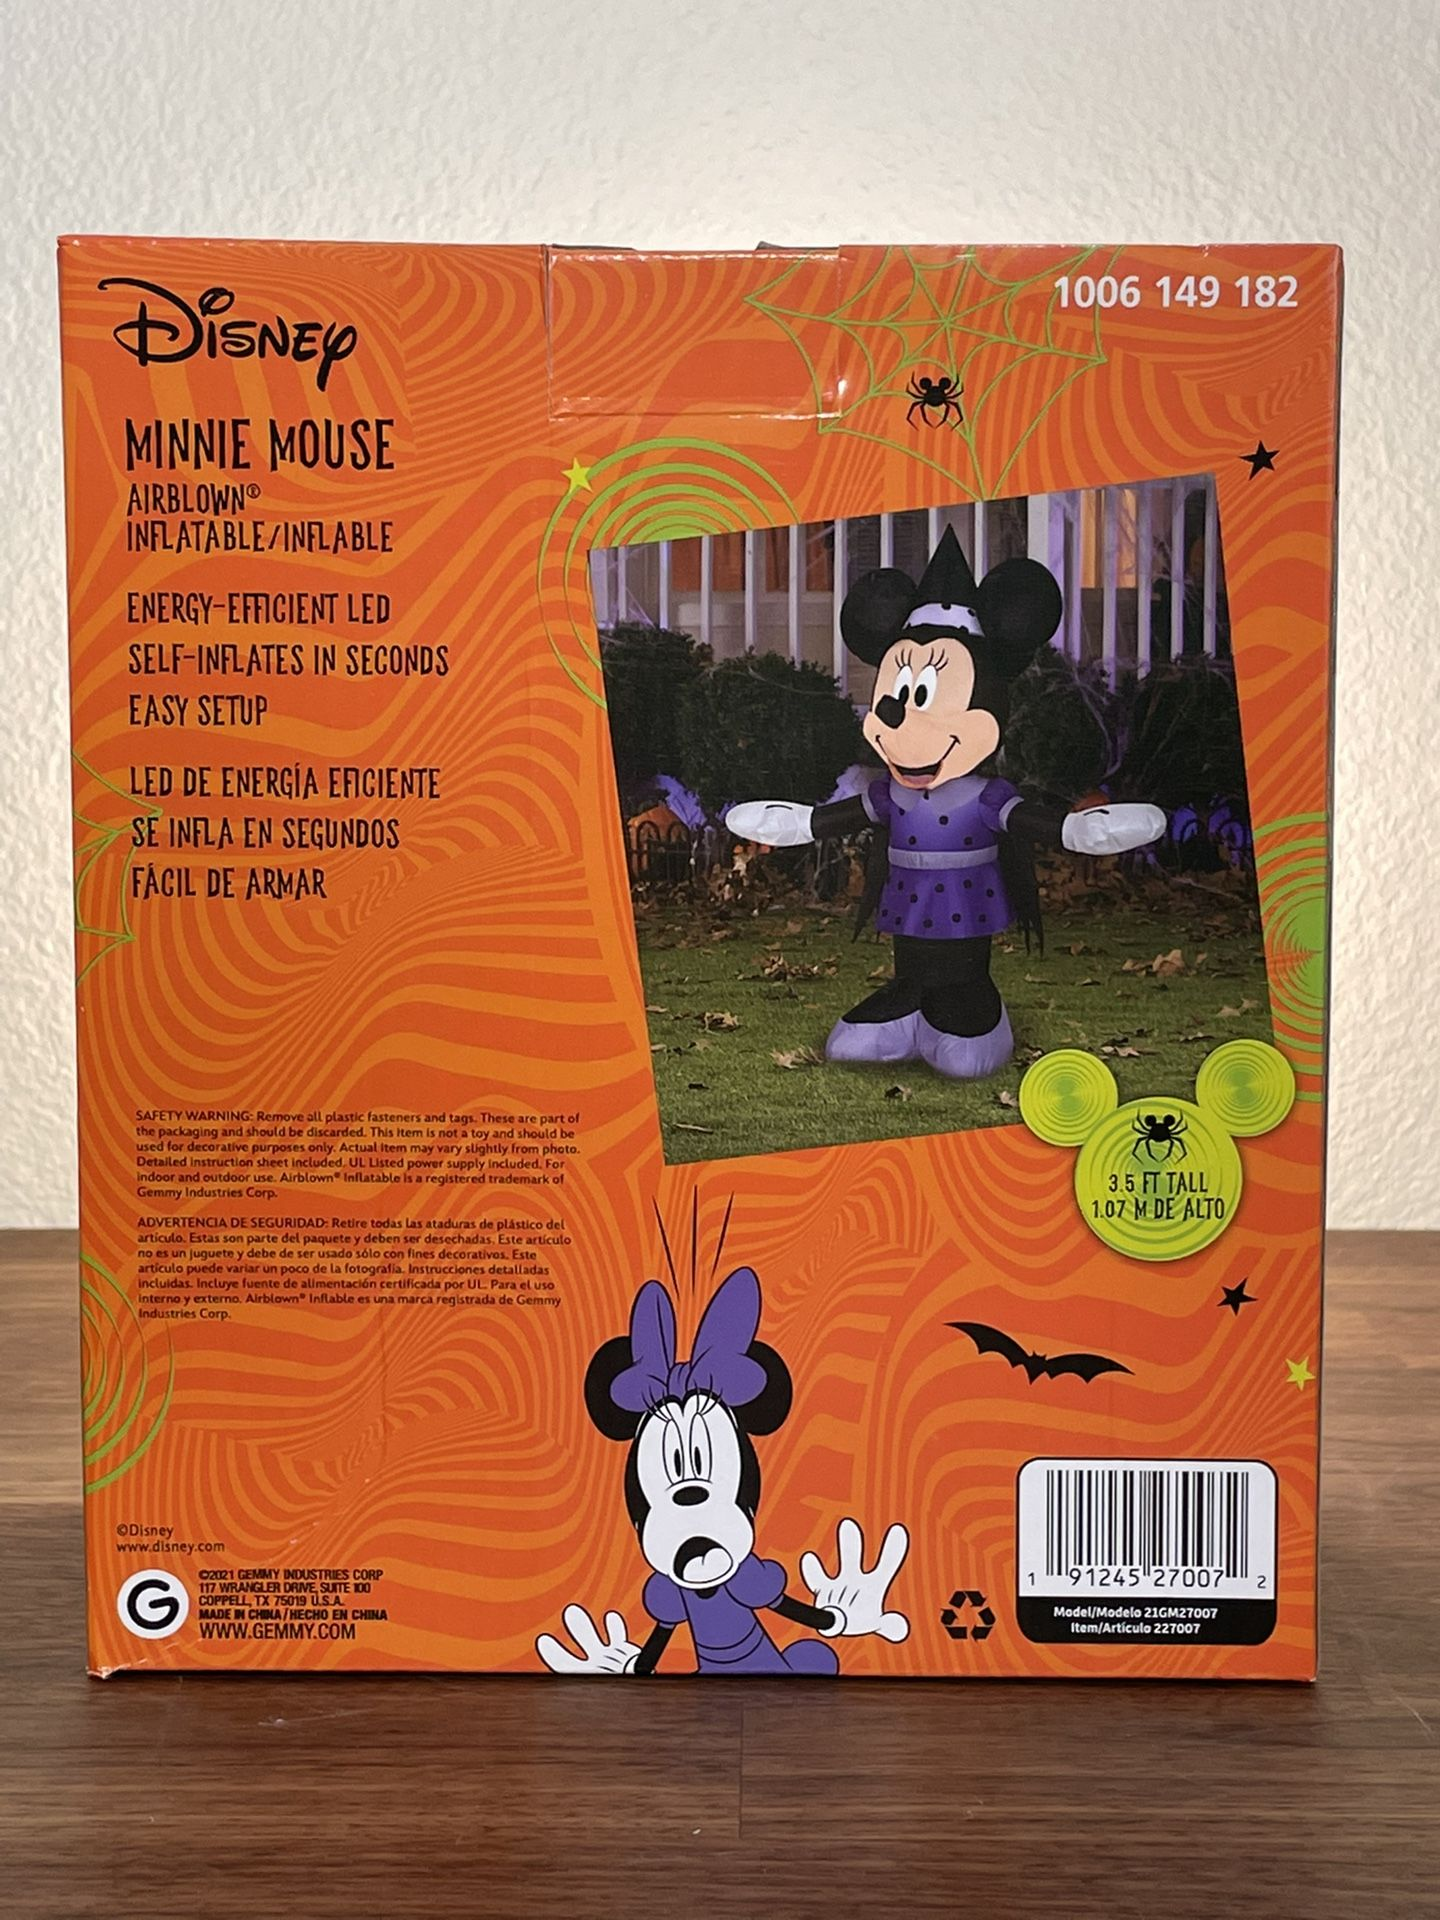 NEW Disney Minnie Mouse Airblown Inflatable Halloween Decoration